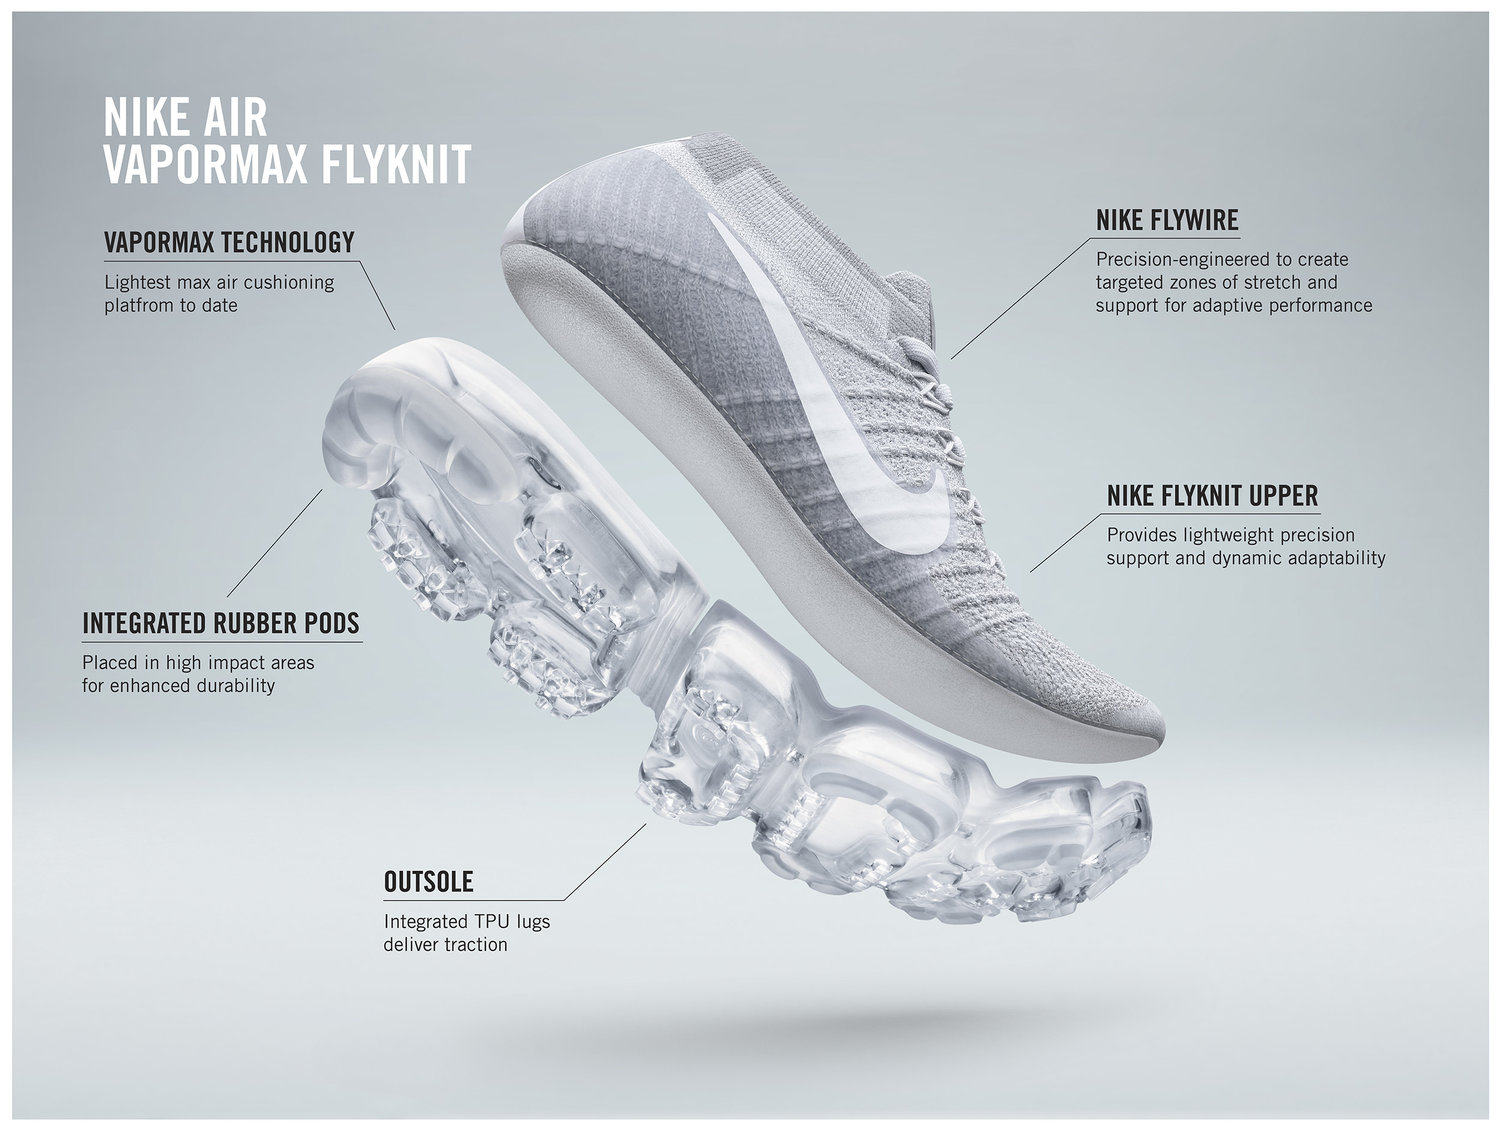 8f205290f543d SP17 RN VaporMax ExplodedView Upper Tech 2500px.jpg. Image concept created  to illustrate the technology behind the Nike Air VaporMax Flyknit ...